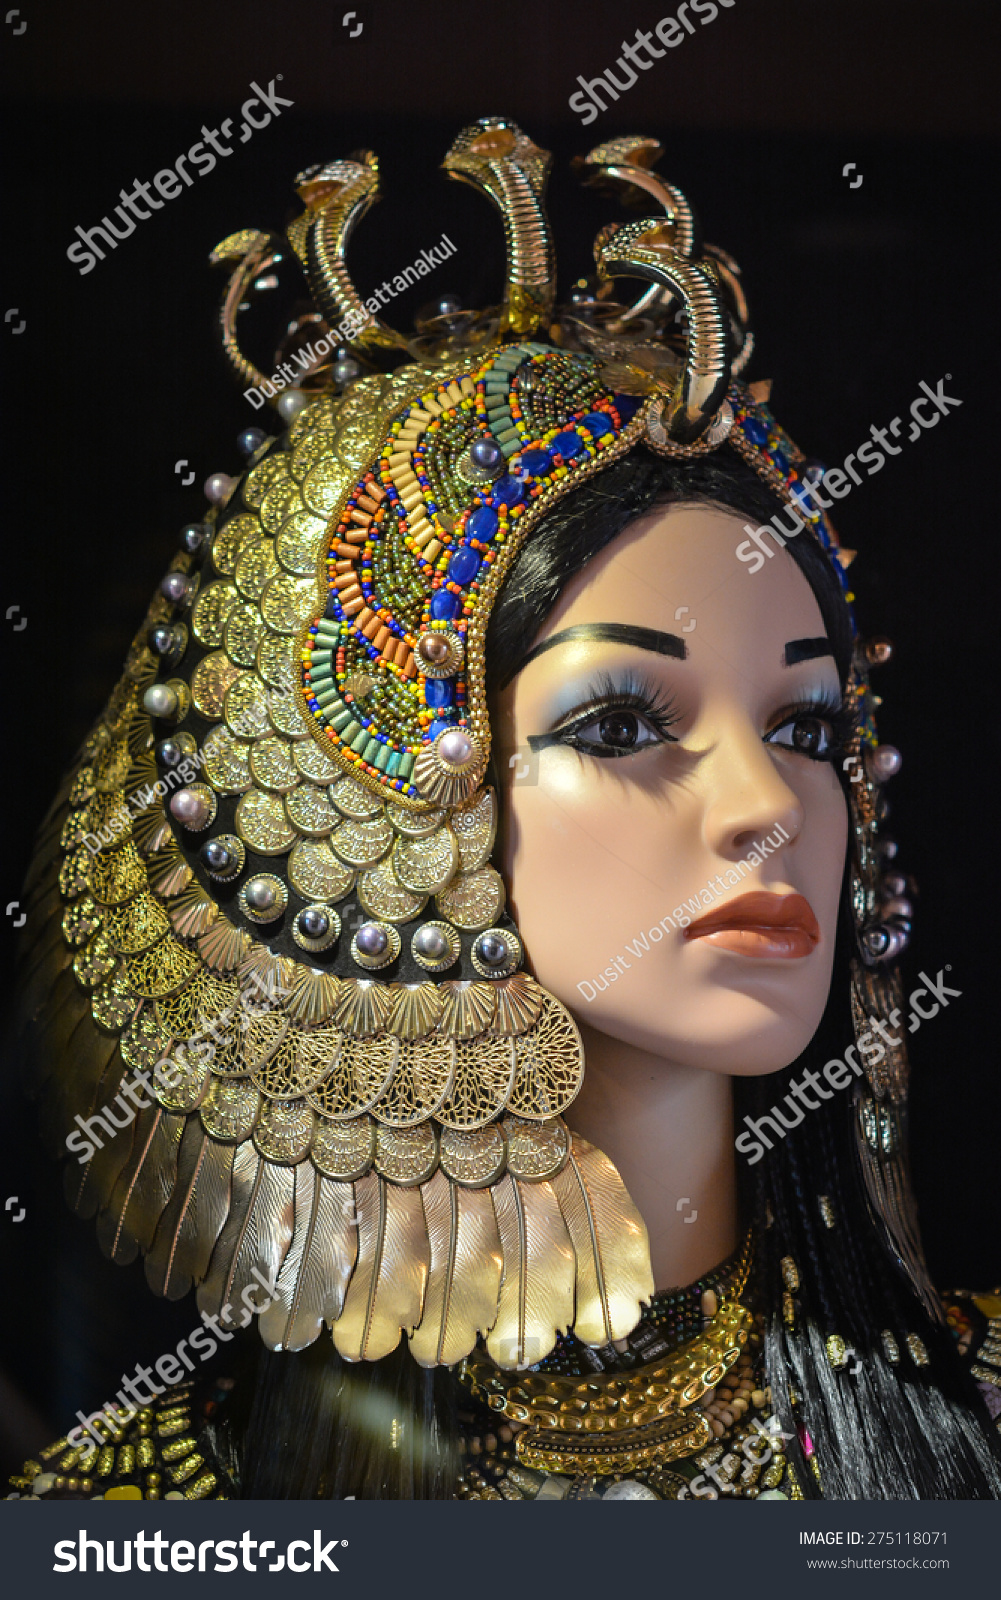 Cleopatra Ornate Traditional Cherry Formal Dining Room: Egyptian Princess Desert Ancient Pyramids Stock Photo